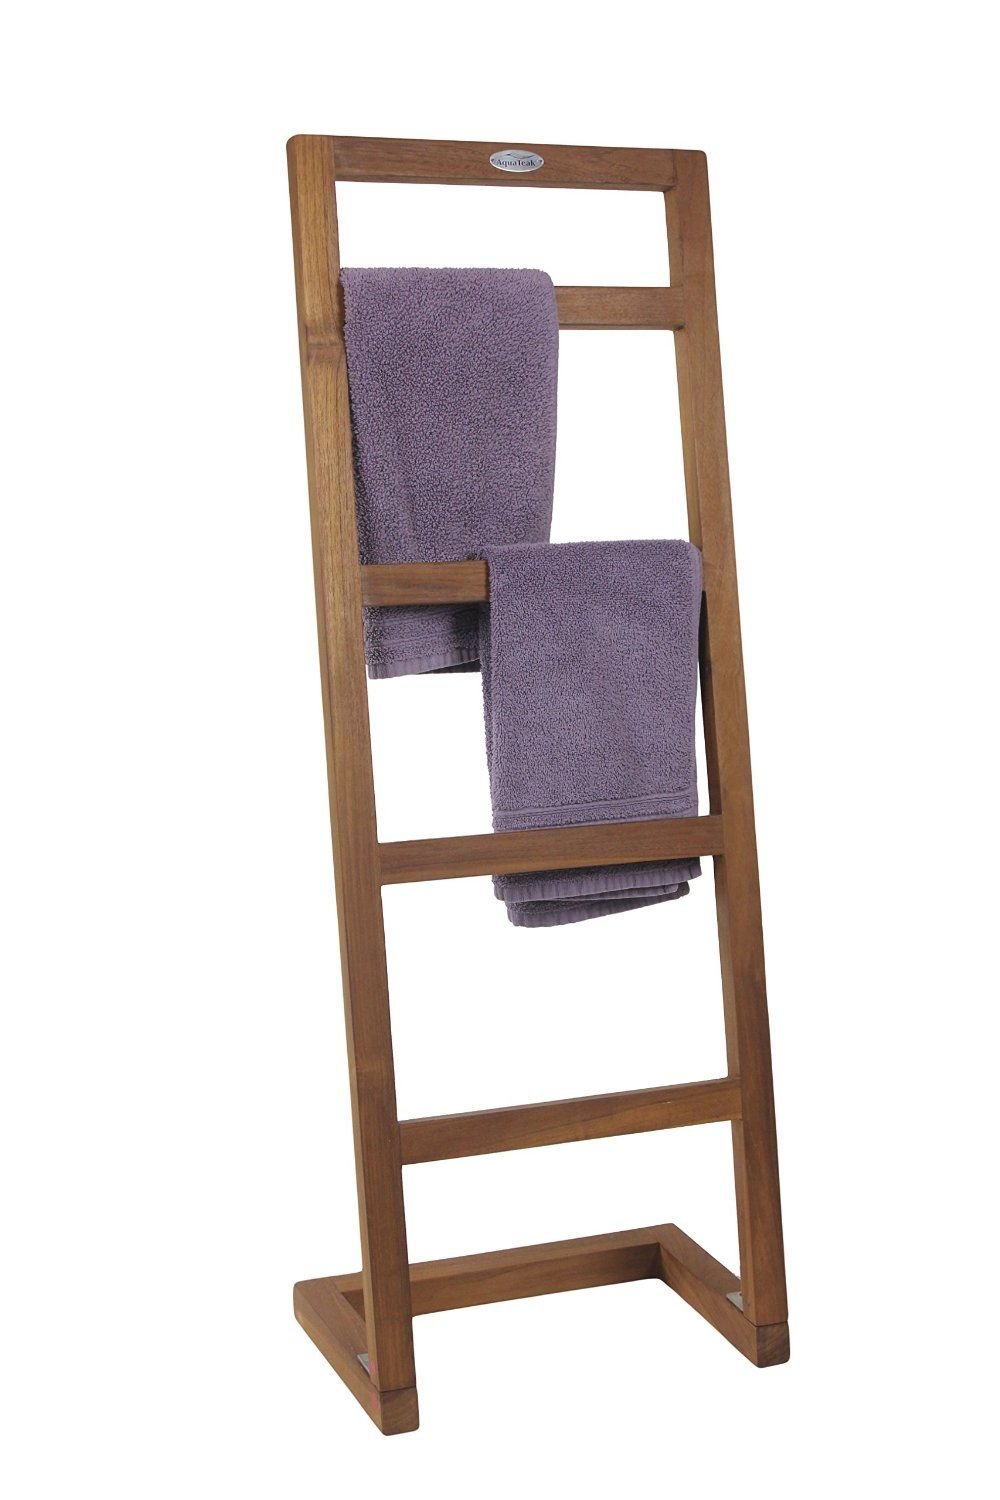 Spa Exterieur Amazon Amazon Angled Teak Towel Stand From The Spa Collection